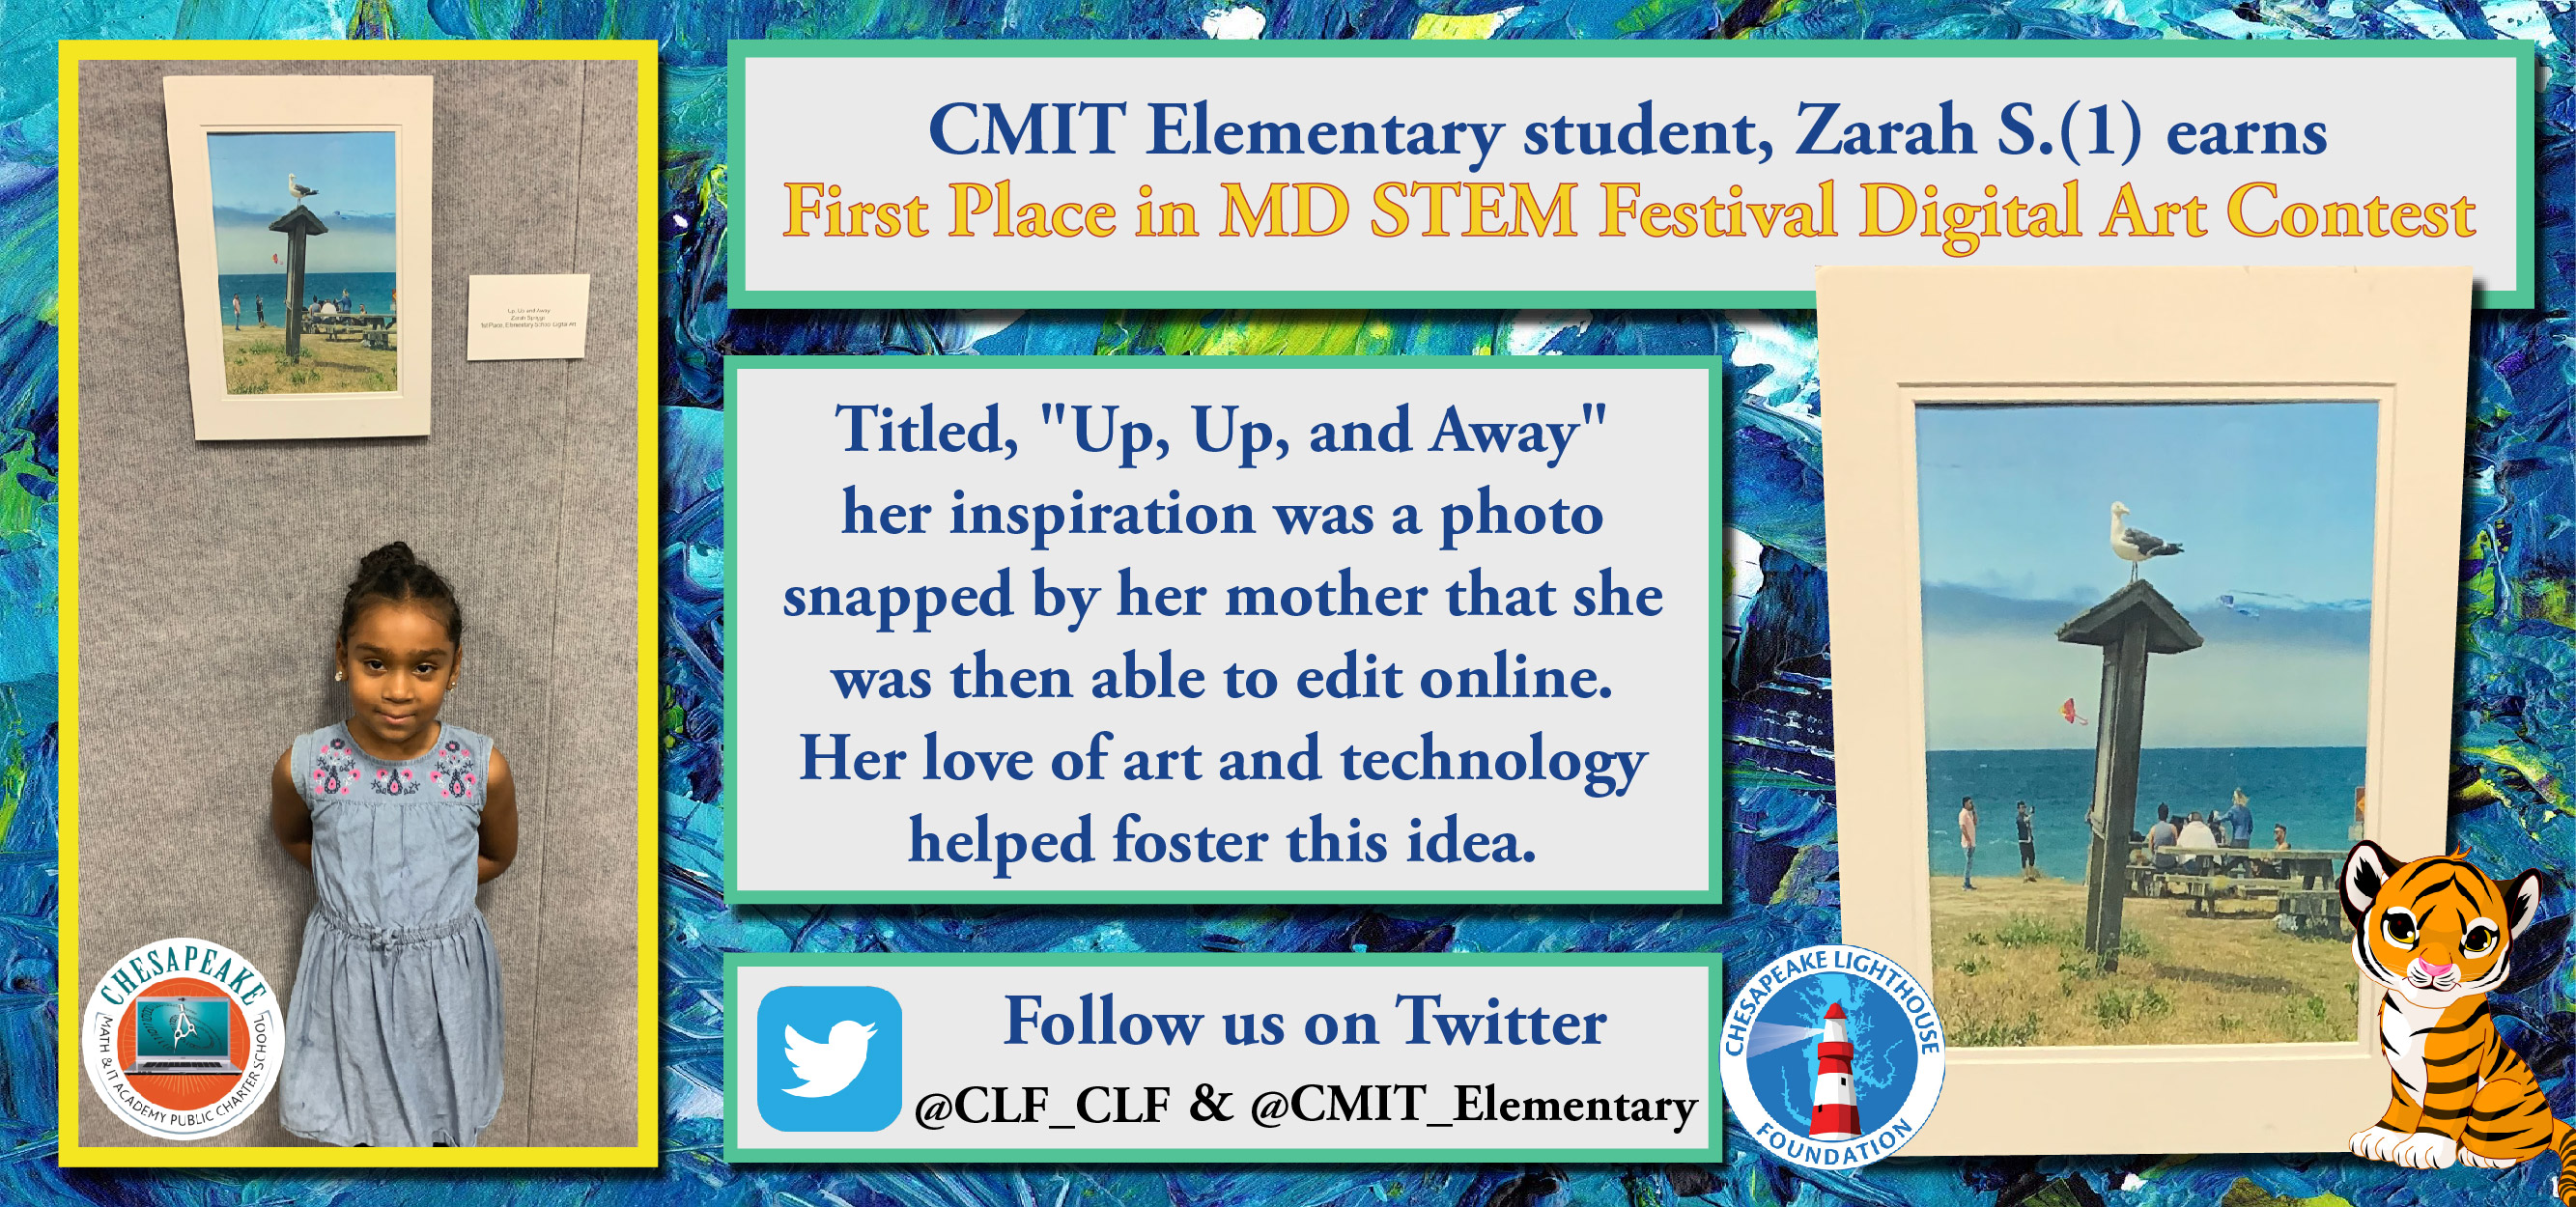 CMIT Elementary First Grade Student Wins First Place in MD STEM Festival Digital Art Contest